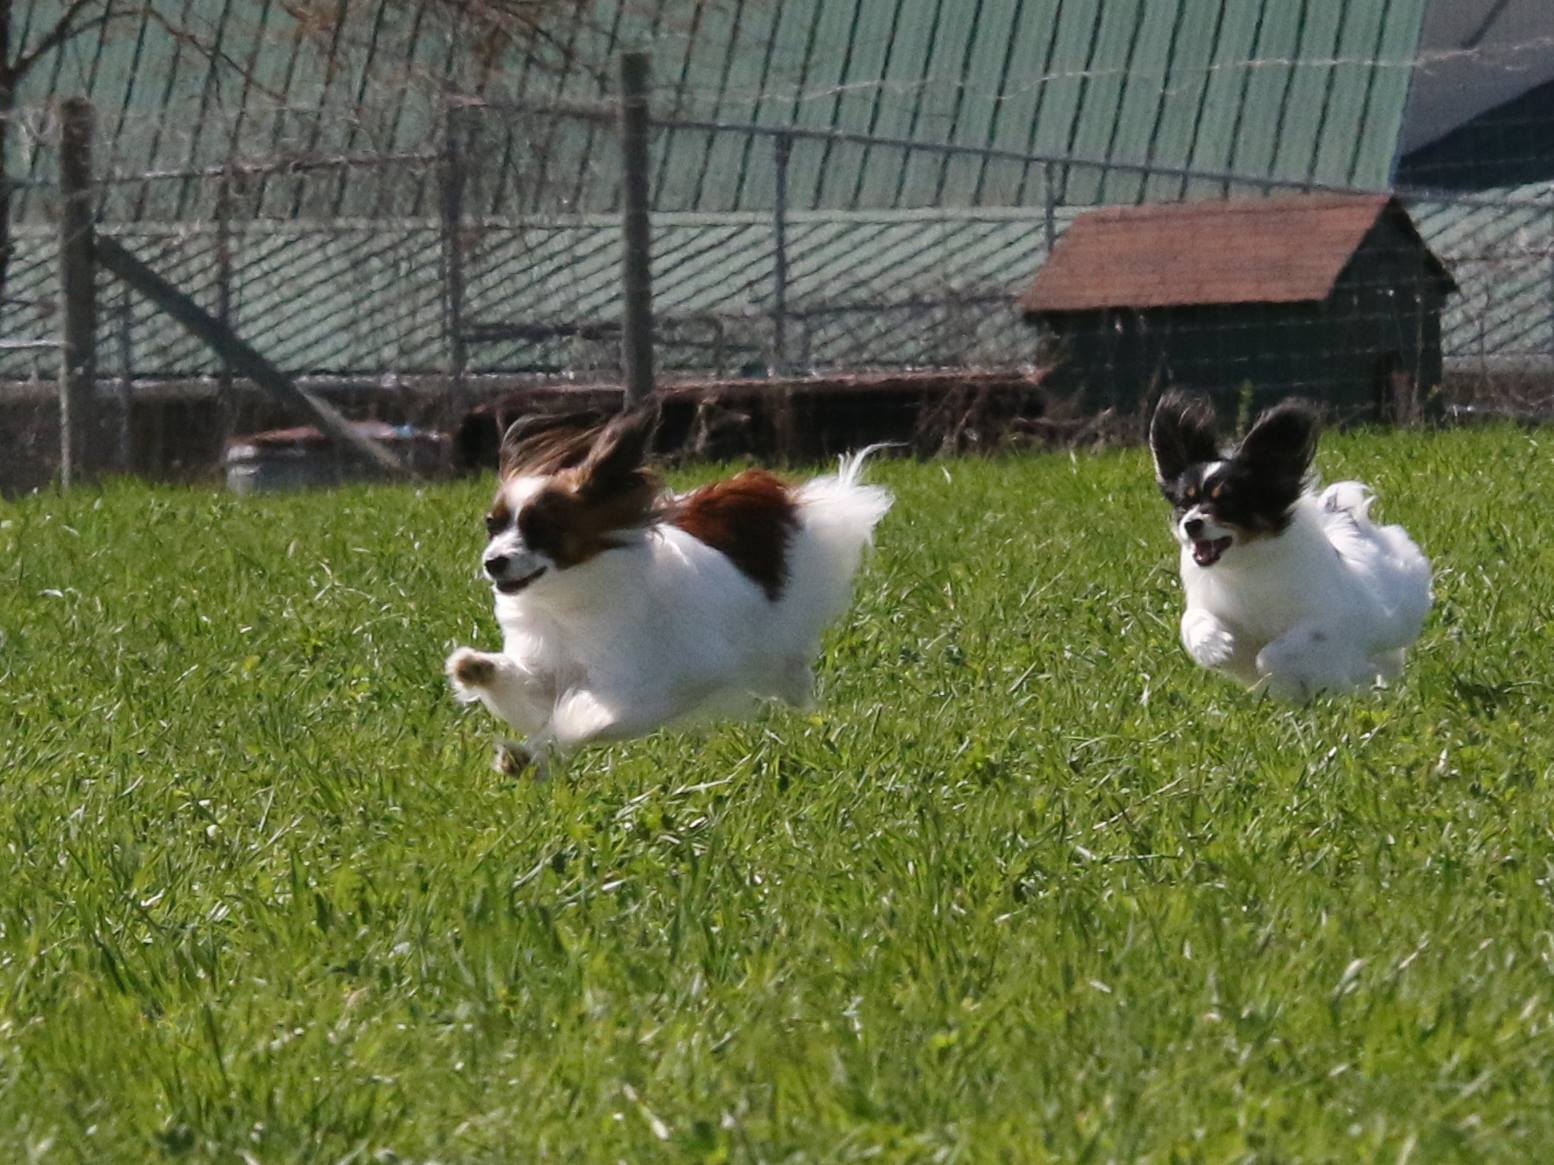 Django and Gypsy - The all breeds practice featured 2 crowd pleasing Papillons,Django (in front)and Gypsy. They were feisty and fun to watch as they chased the lure around the field.(photo by C Ellery)